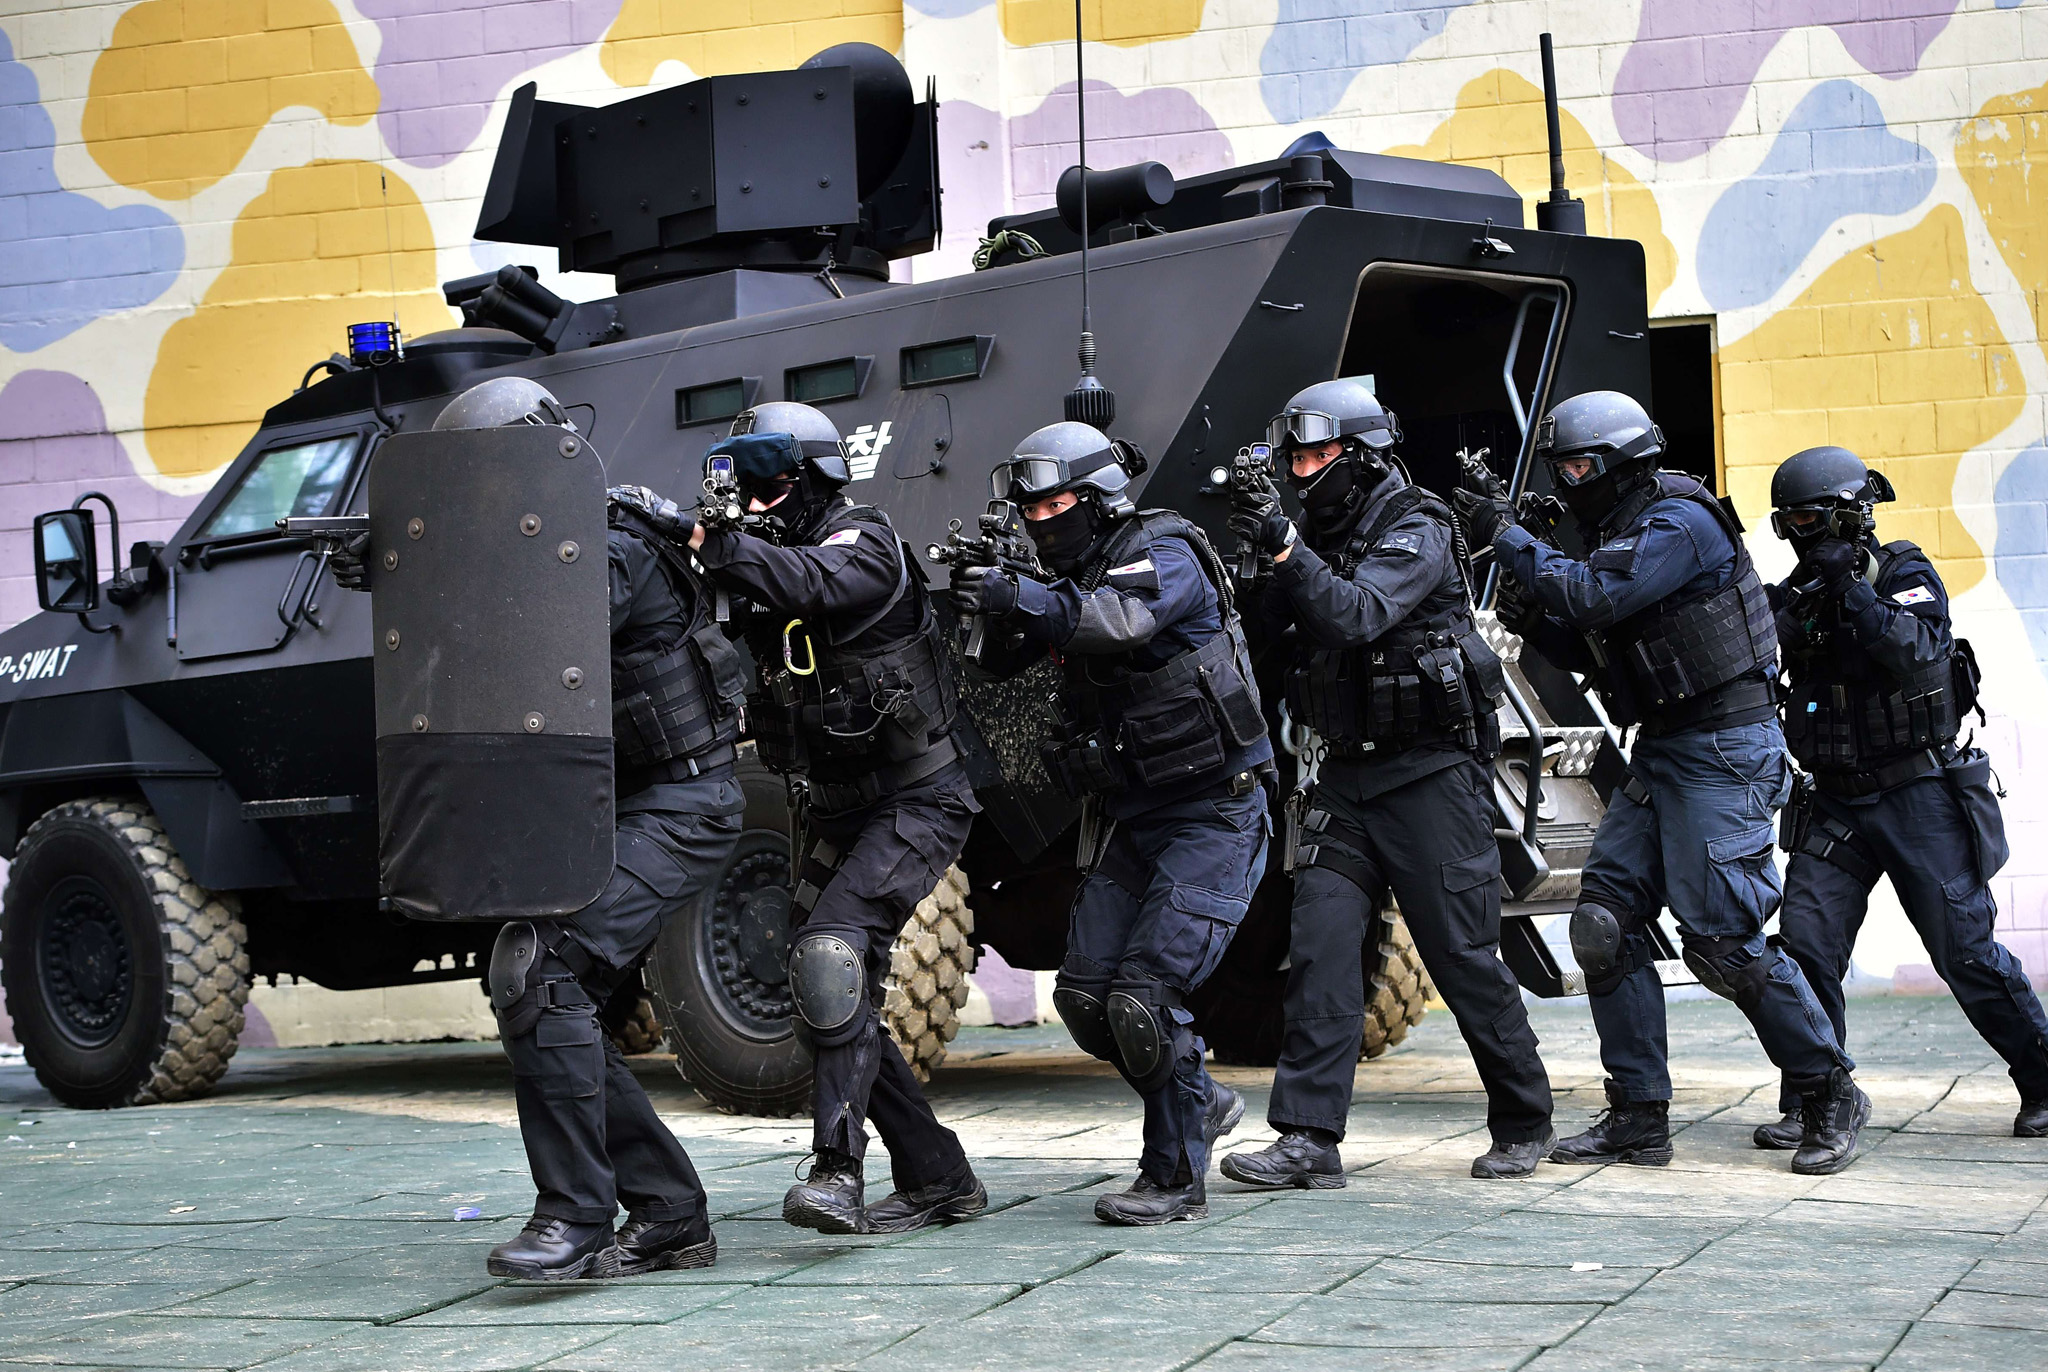 A South Korean police SWAT team members move into a building during an anti-terror drill in Seoul.